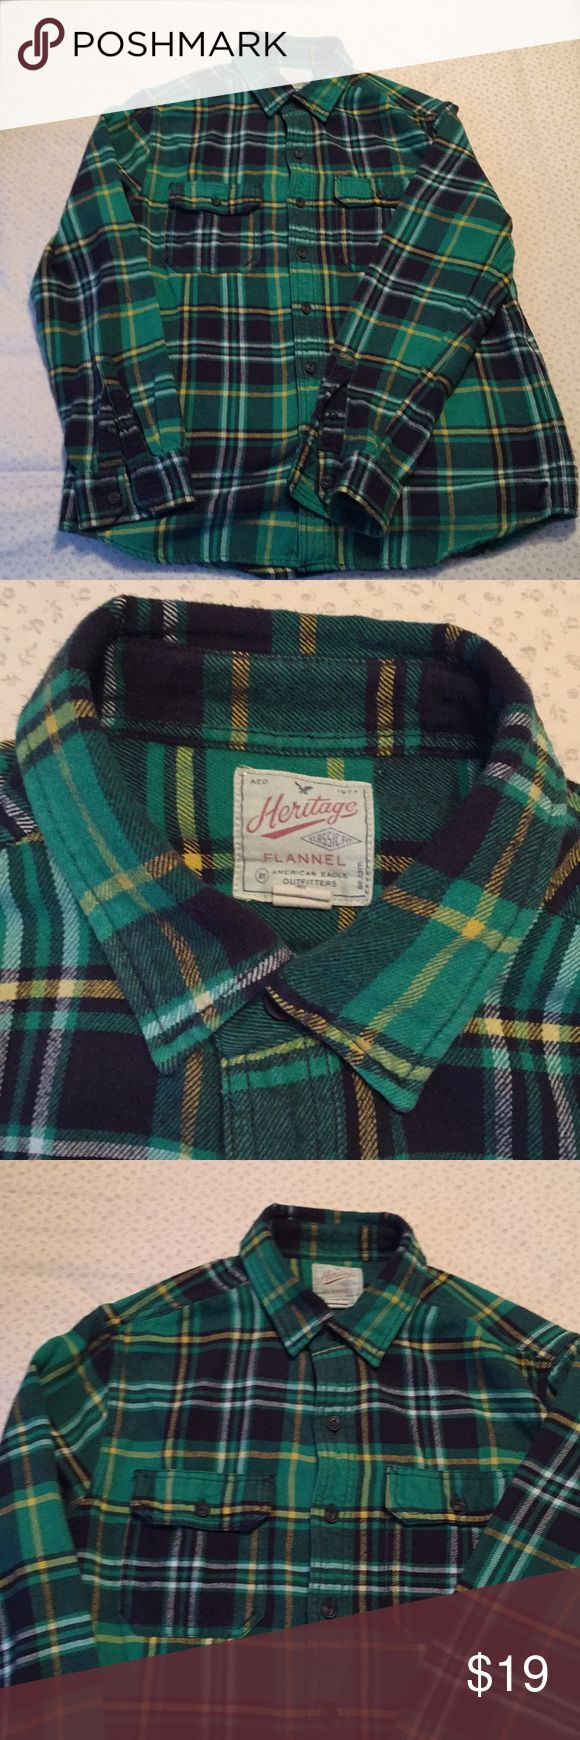 Green long sleeve plaid flannel shirt worn couple time and it's clean with excellent condition. American eagle American Eagle Outfitters Shirts Casual Button Down Shirts